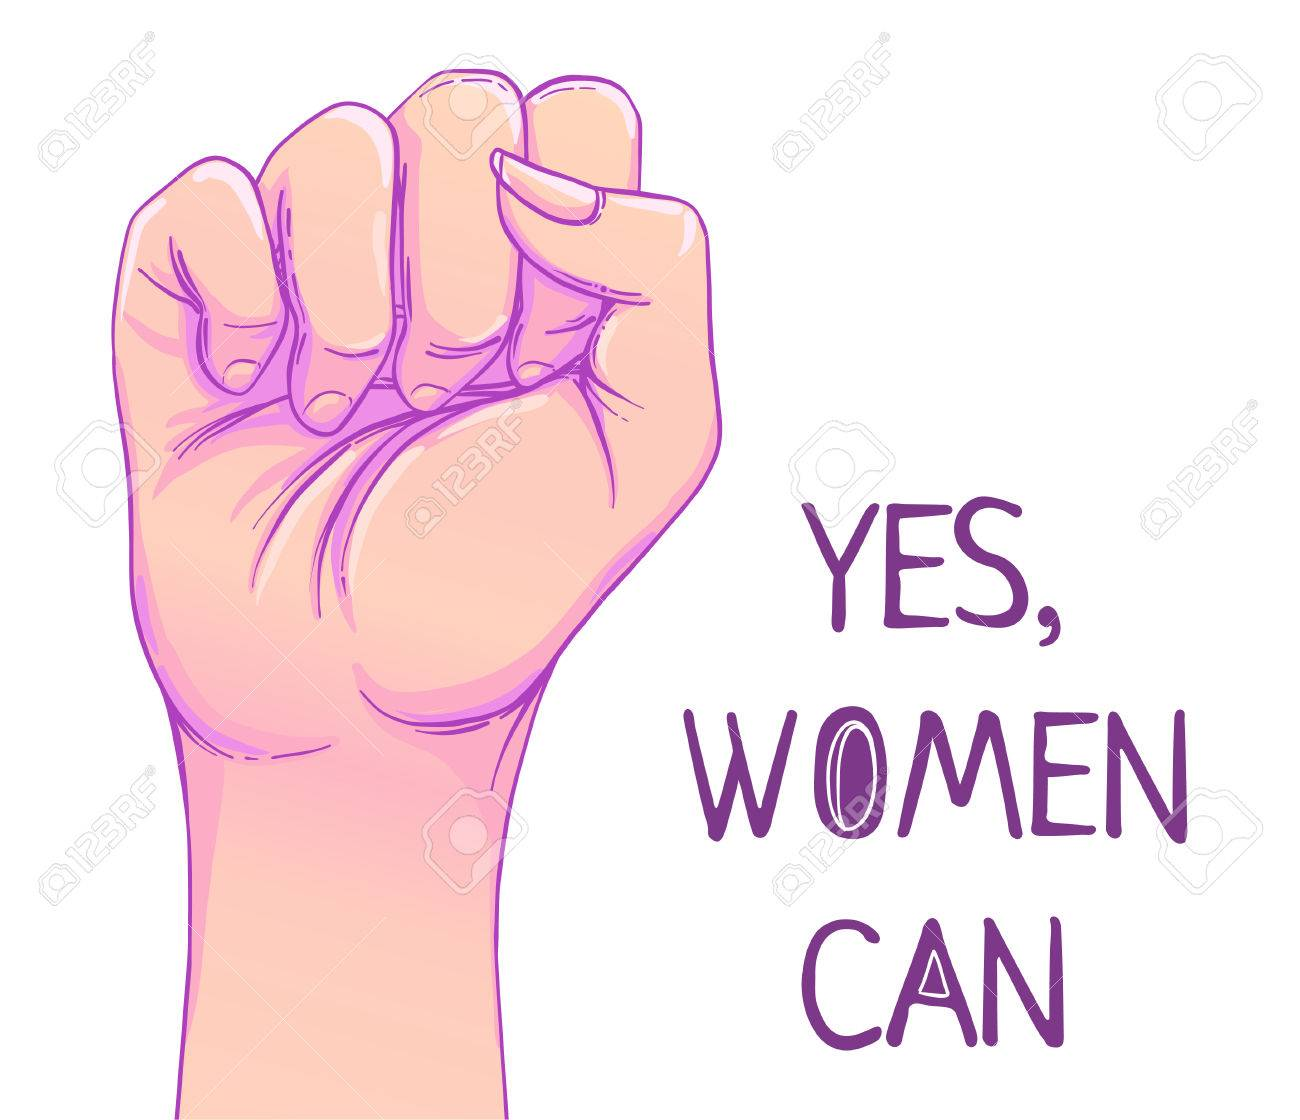 Yes, Women Can. Woman's hand with her fist raised up. Girl Power. Feminism concept. Realistic style vector illustration in pink pastel goth colors isolated on white. Sticker, patch graphic design. - 78830480